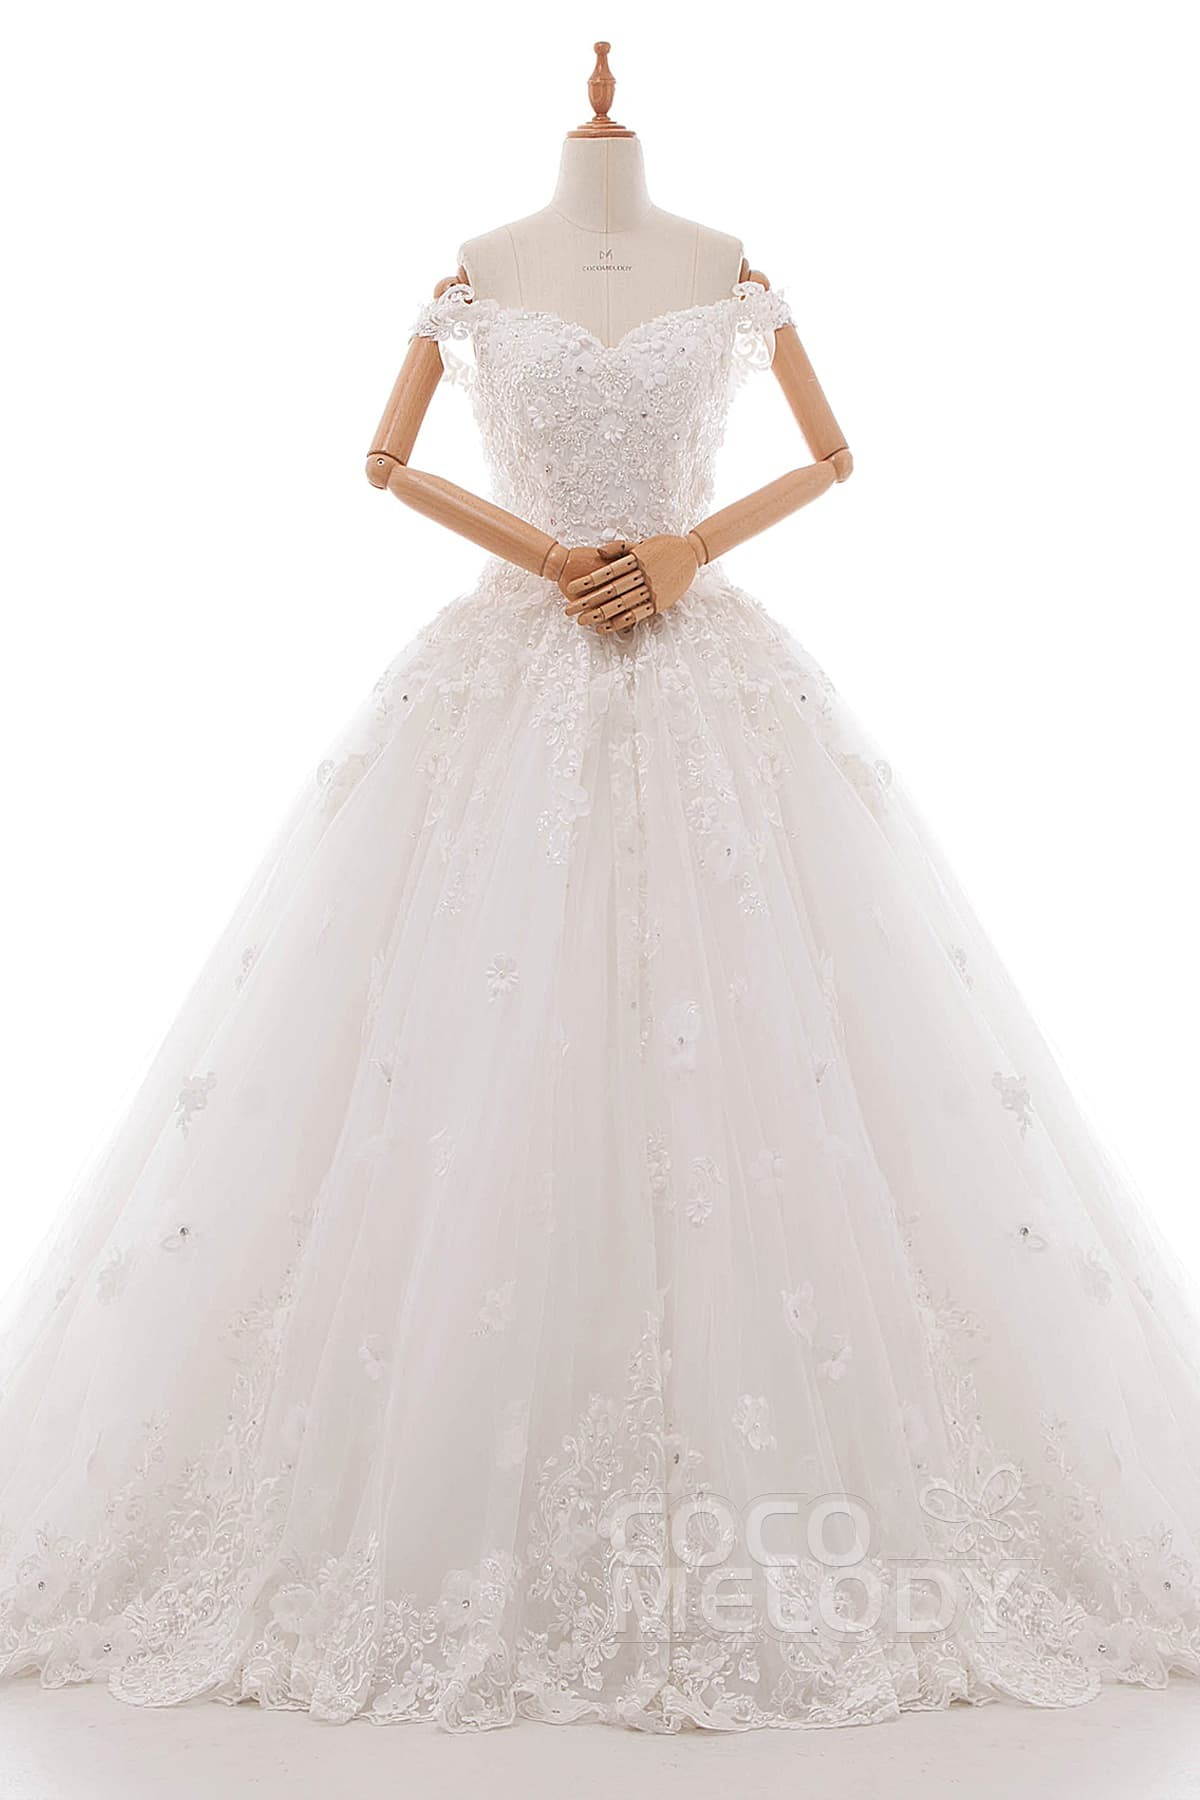 PrincessTulle Lace and Organza Wedding Dress LD4971 | Cocomelody